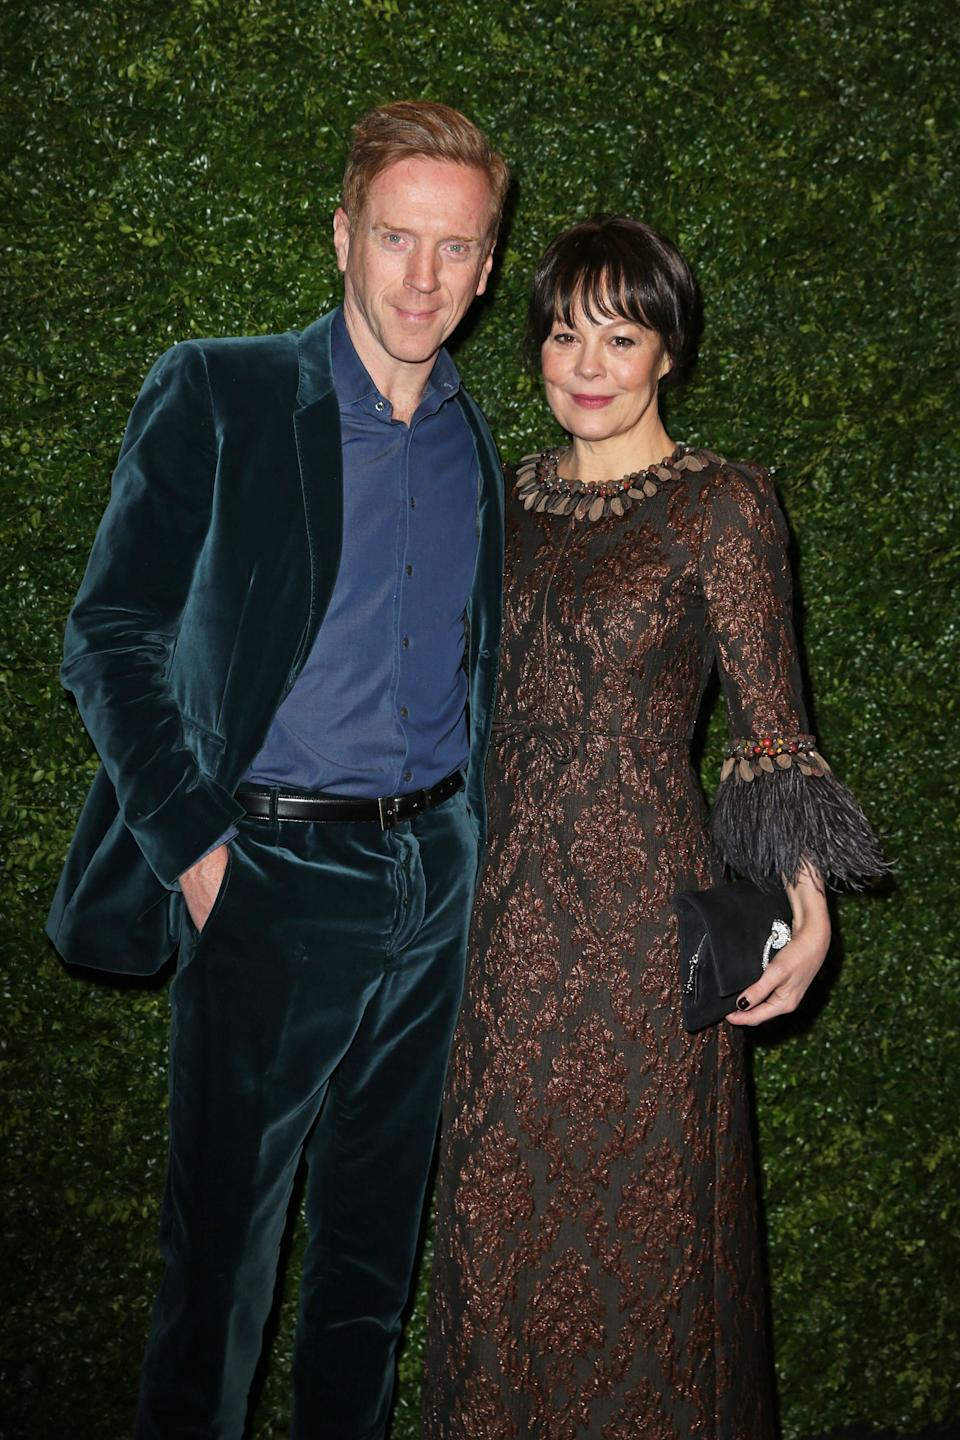 Damian Lewis and Helen McCrory (Photo: Isabel Infantes - PA Images via Getty Images)